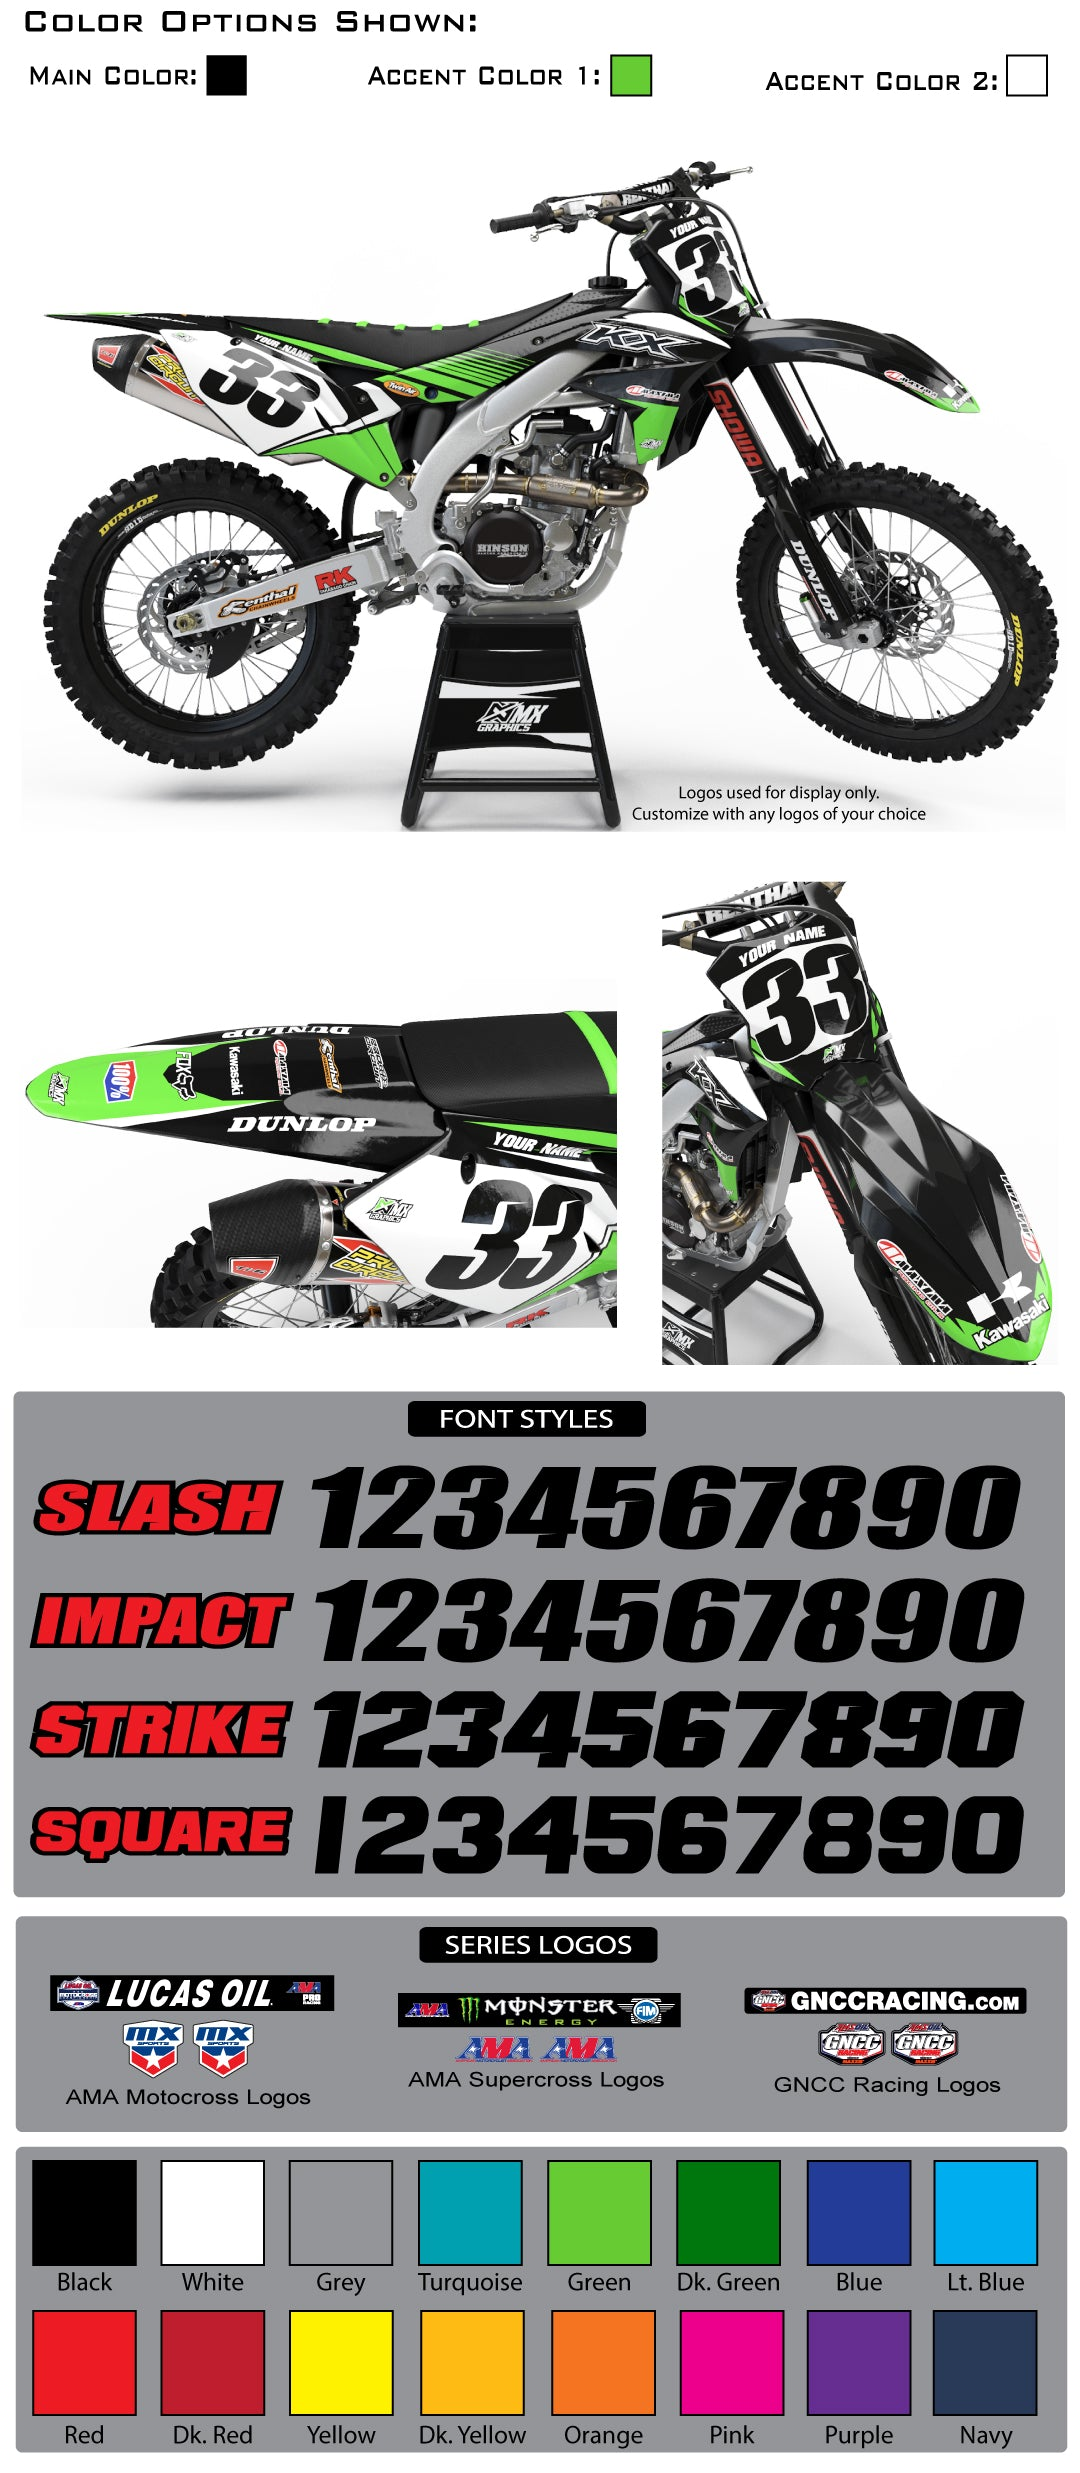 Kawasaki Pro Graphic Kit